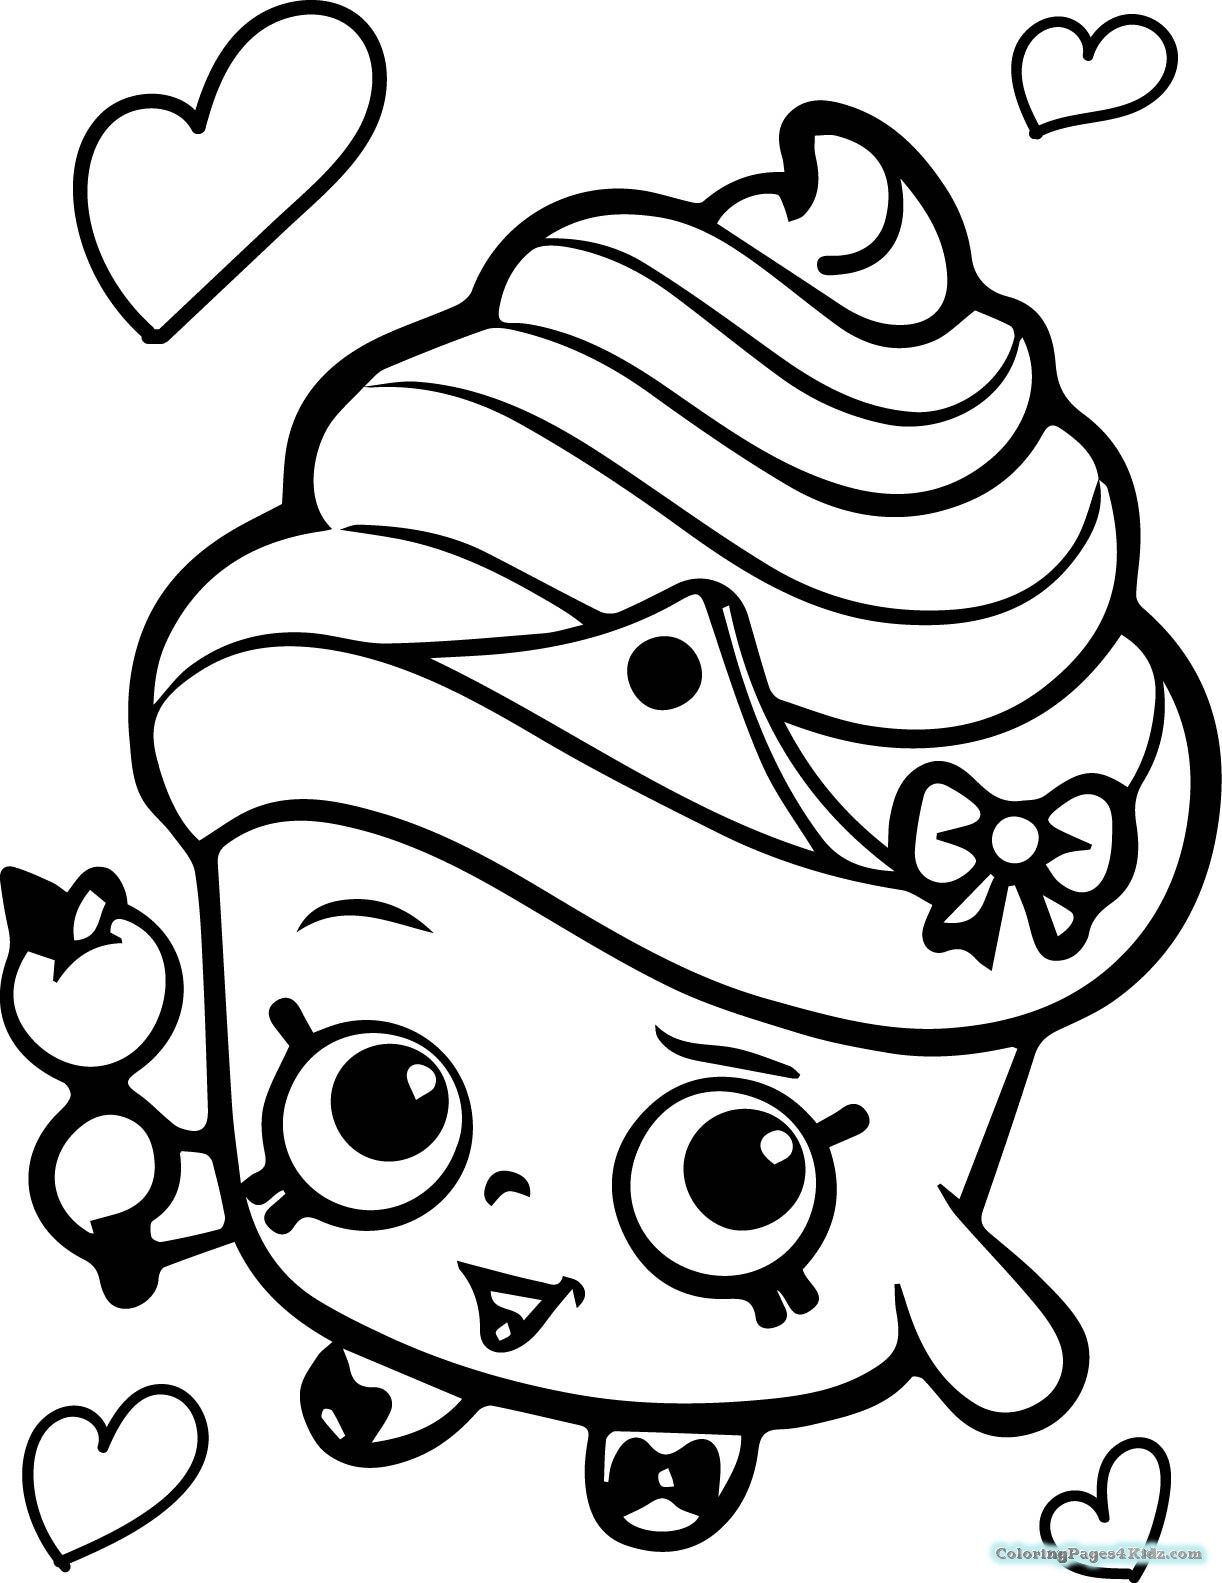 coloring worksheets shopkins shopkins coloring pages season 7 coloring pages for kids shopkins coloring worksheets